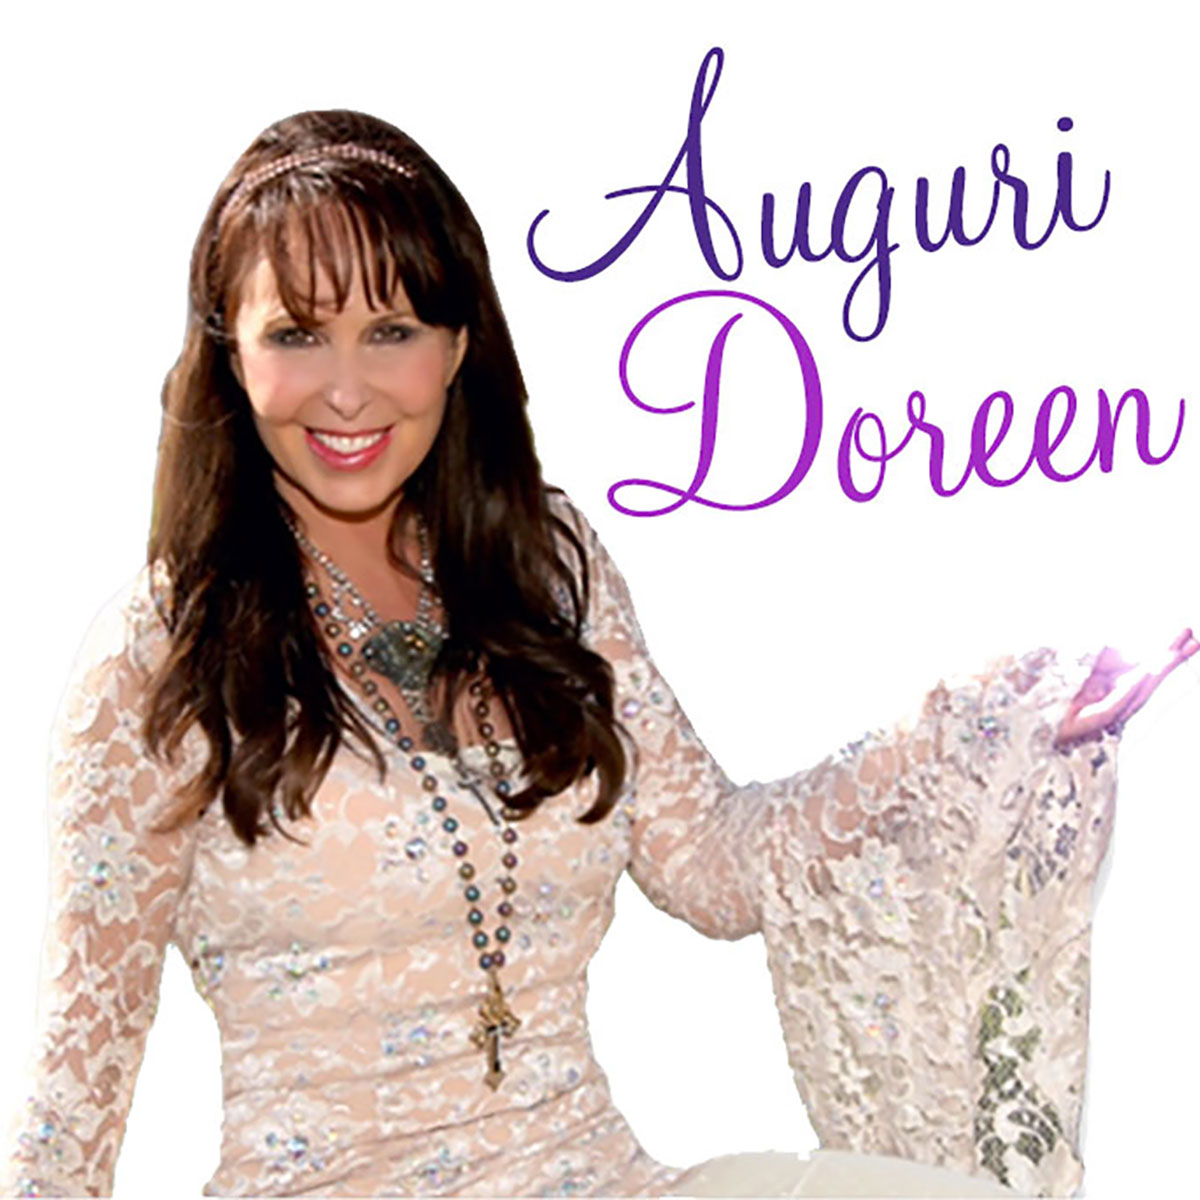 auguri_doreen_fb